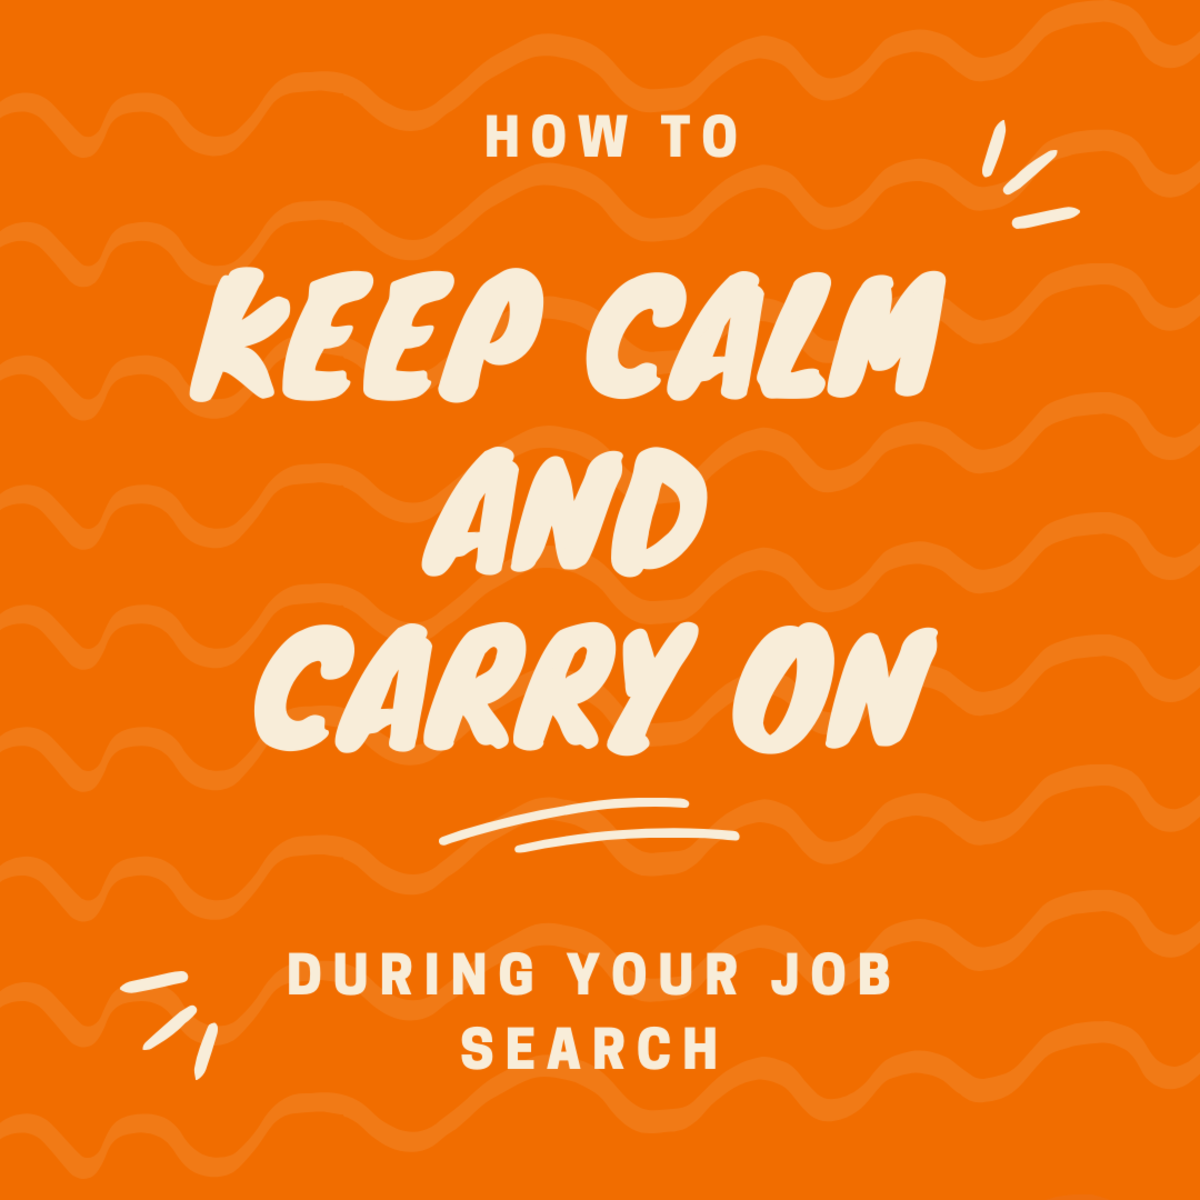 The Job Hunt: 6 Ways to Keep Calm and Carry On